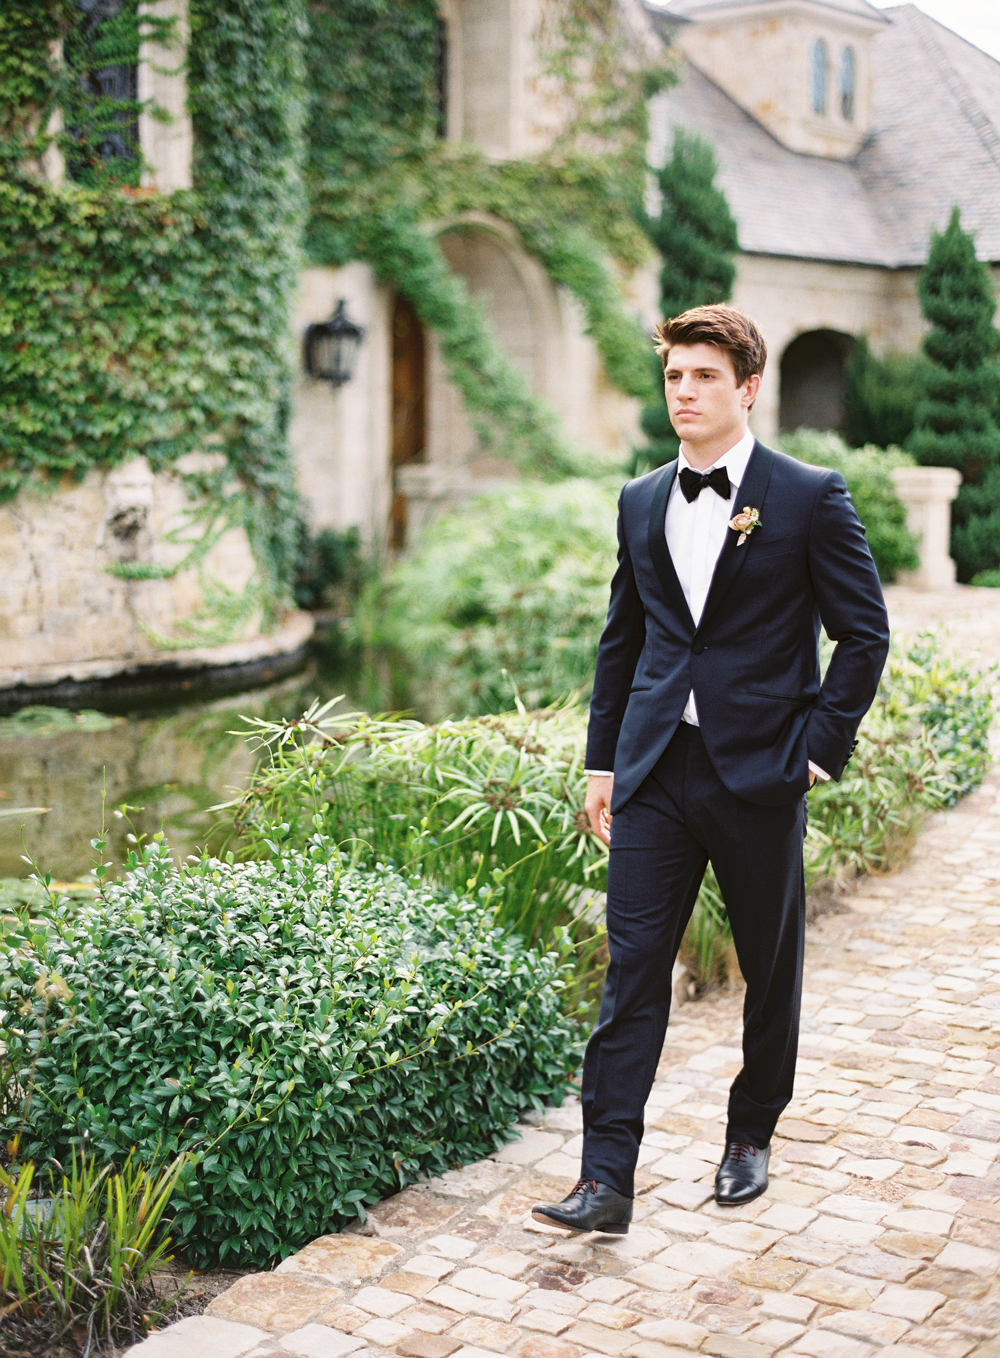 Luxury groom tux | Canali | Hidden Castle | Rancho Santa Fe | Estate Events with Venuelust | neutral wedding | European Wedding Inspiration | French wedding | France wedding photographer | Southern California film photographer | San Diego wedding photographer | Whiskers and Willow Photography